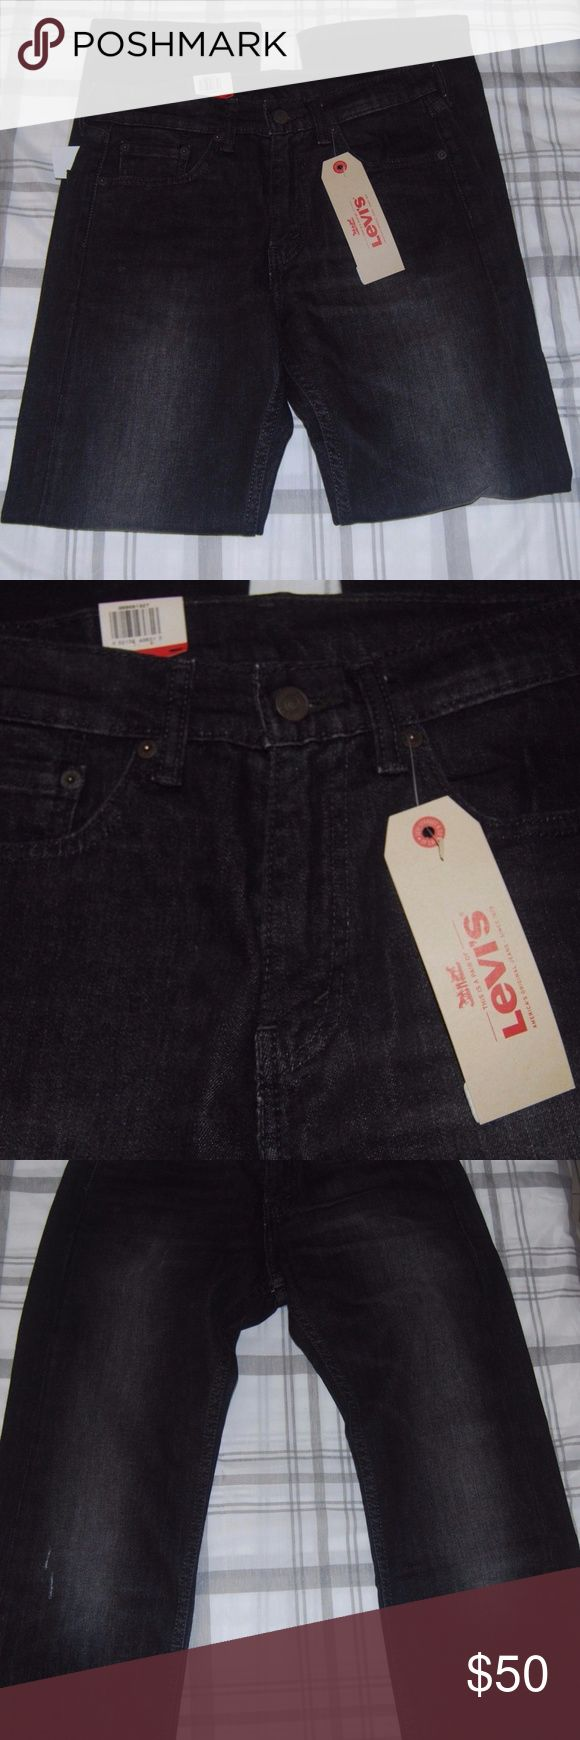 Mens Levis 505 Jeans Regular Fit Men's Levis 505 Jeans  * Regular Fit * Size W31 x L32 * Color Black * Straight Leg * Sits at waist * Extra room in thing Levi's Jeans Straight